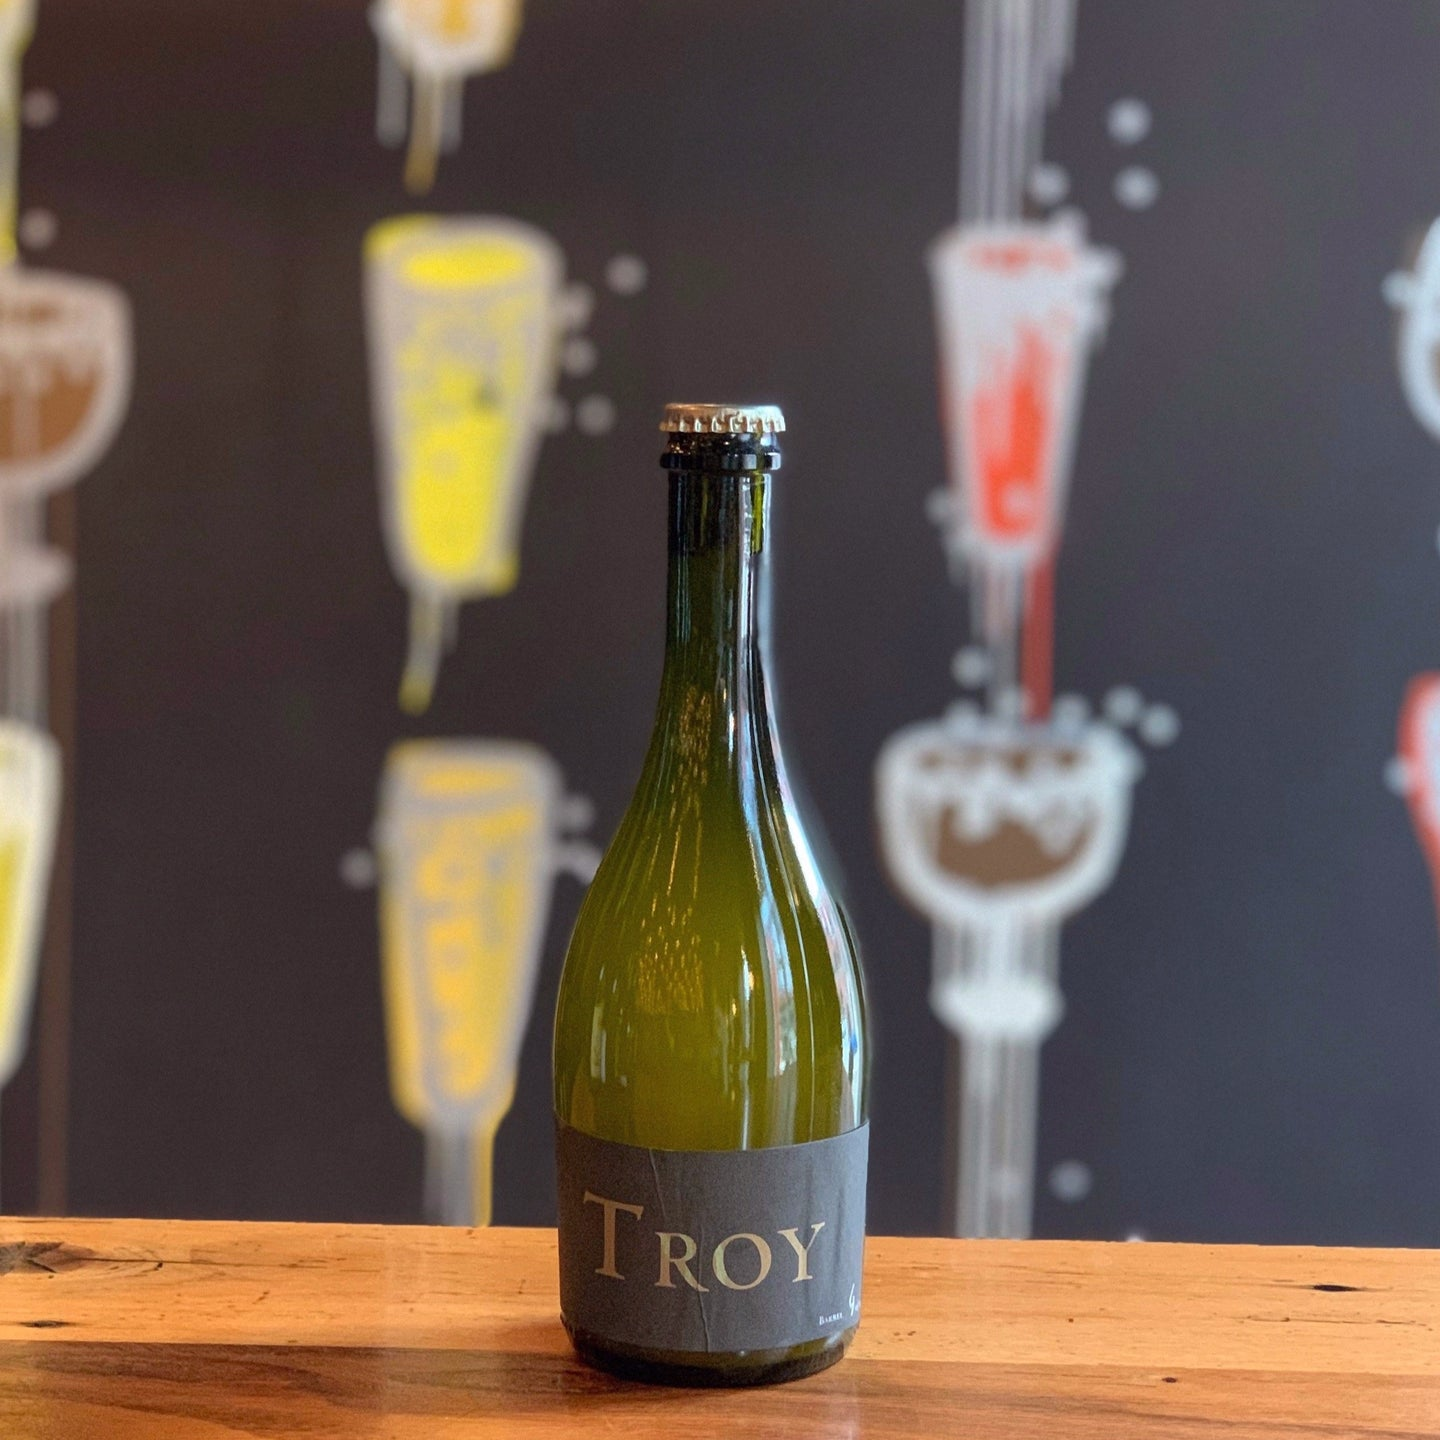 Troy Gold Cider - 2013